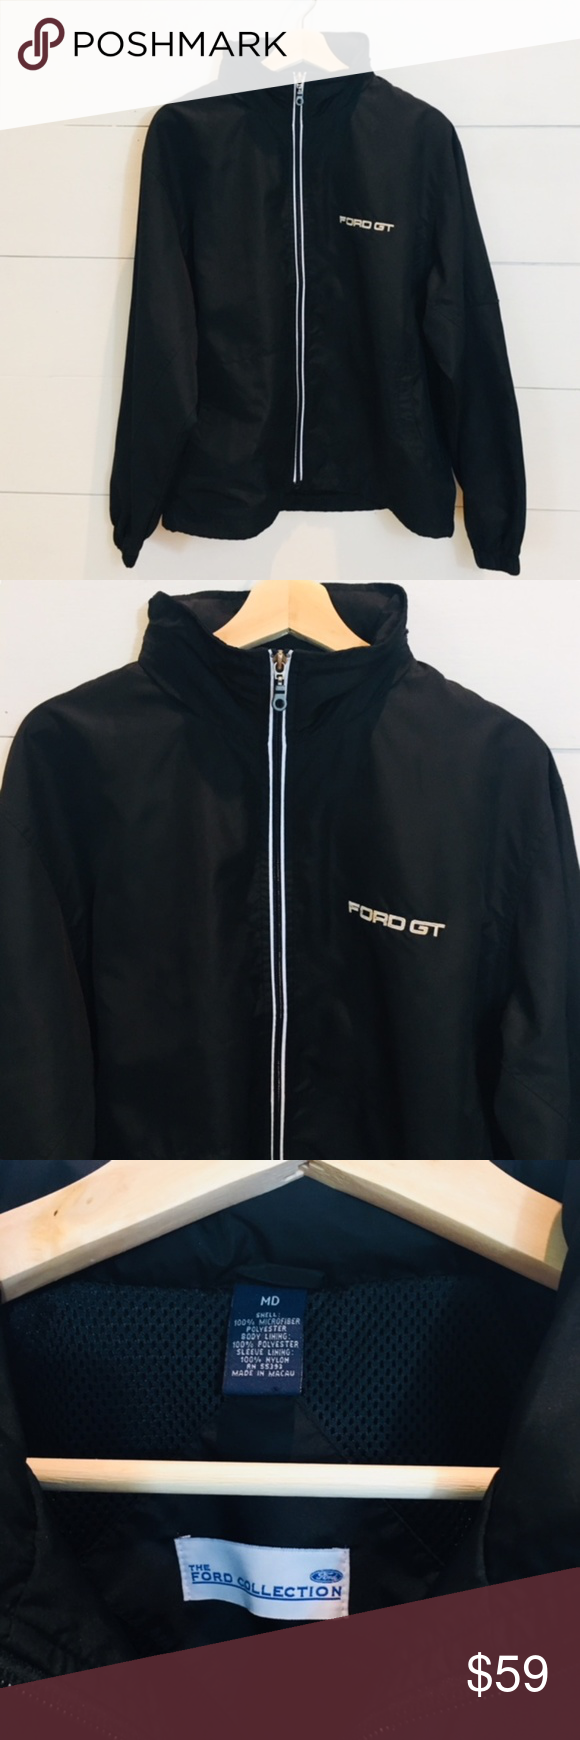 Ford Collection Gt Black Jacket Mens Medium Euc Excellent Used Condition Looks New The